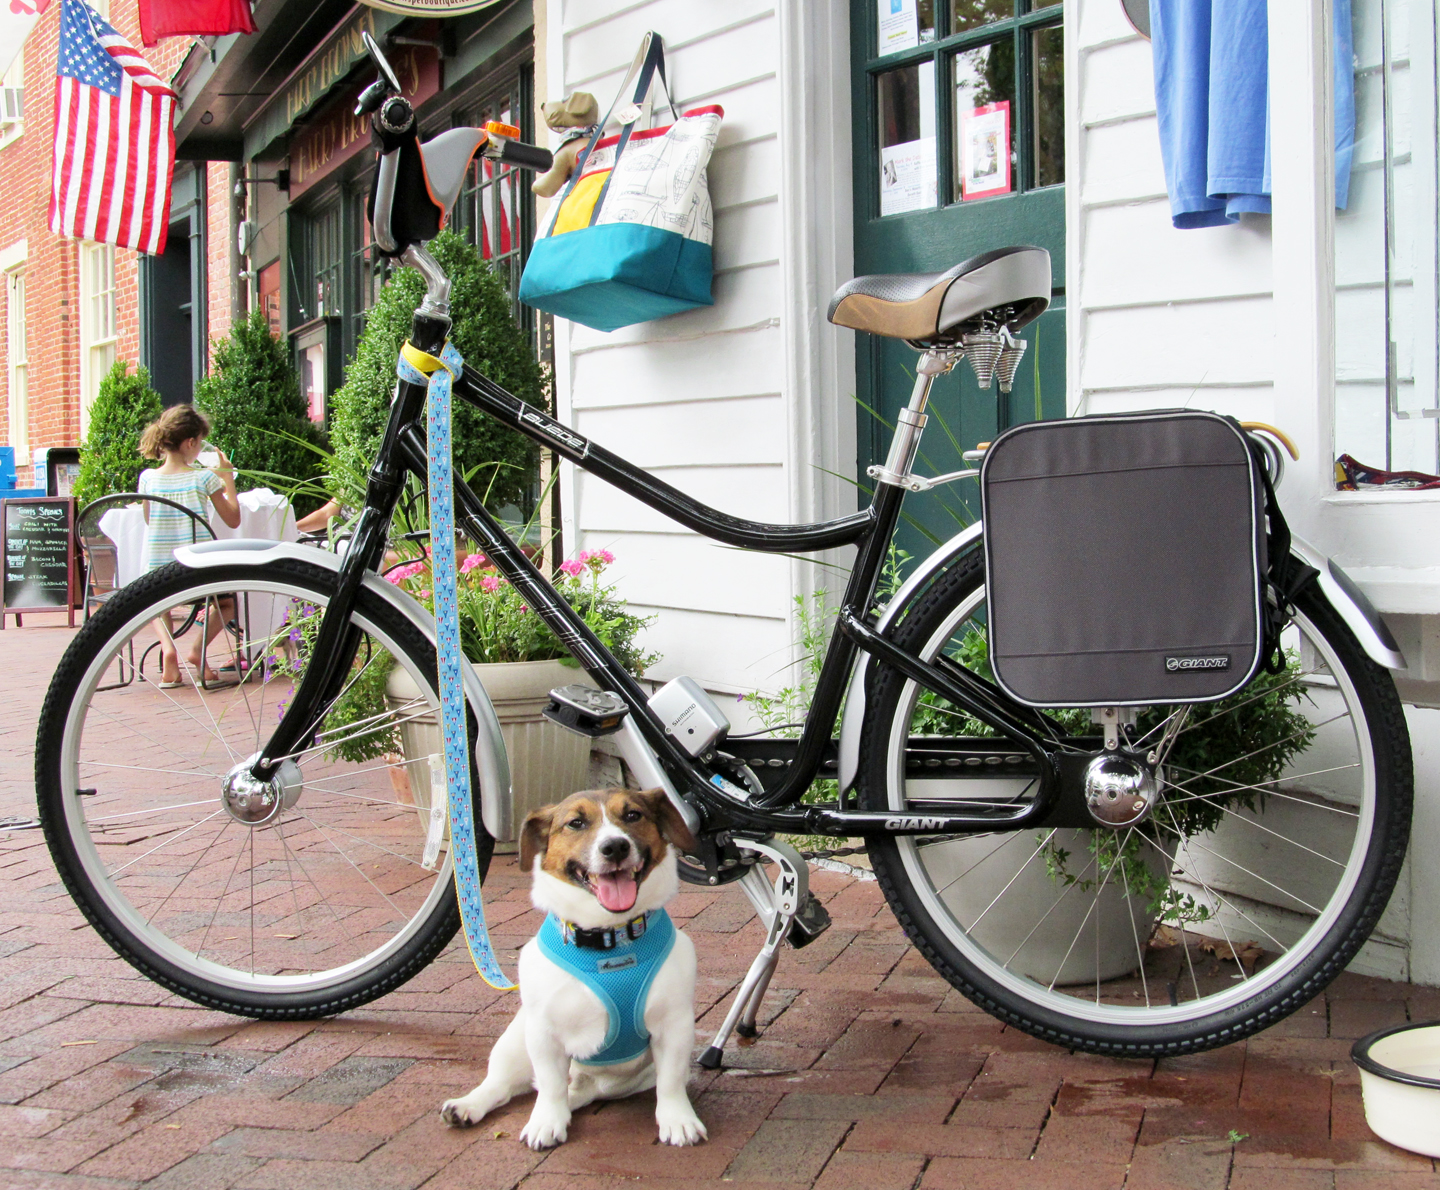 Dick Smothers raffles his bike for to benefit the animals